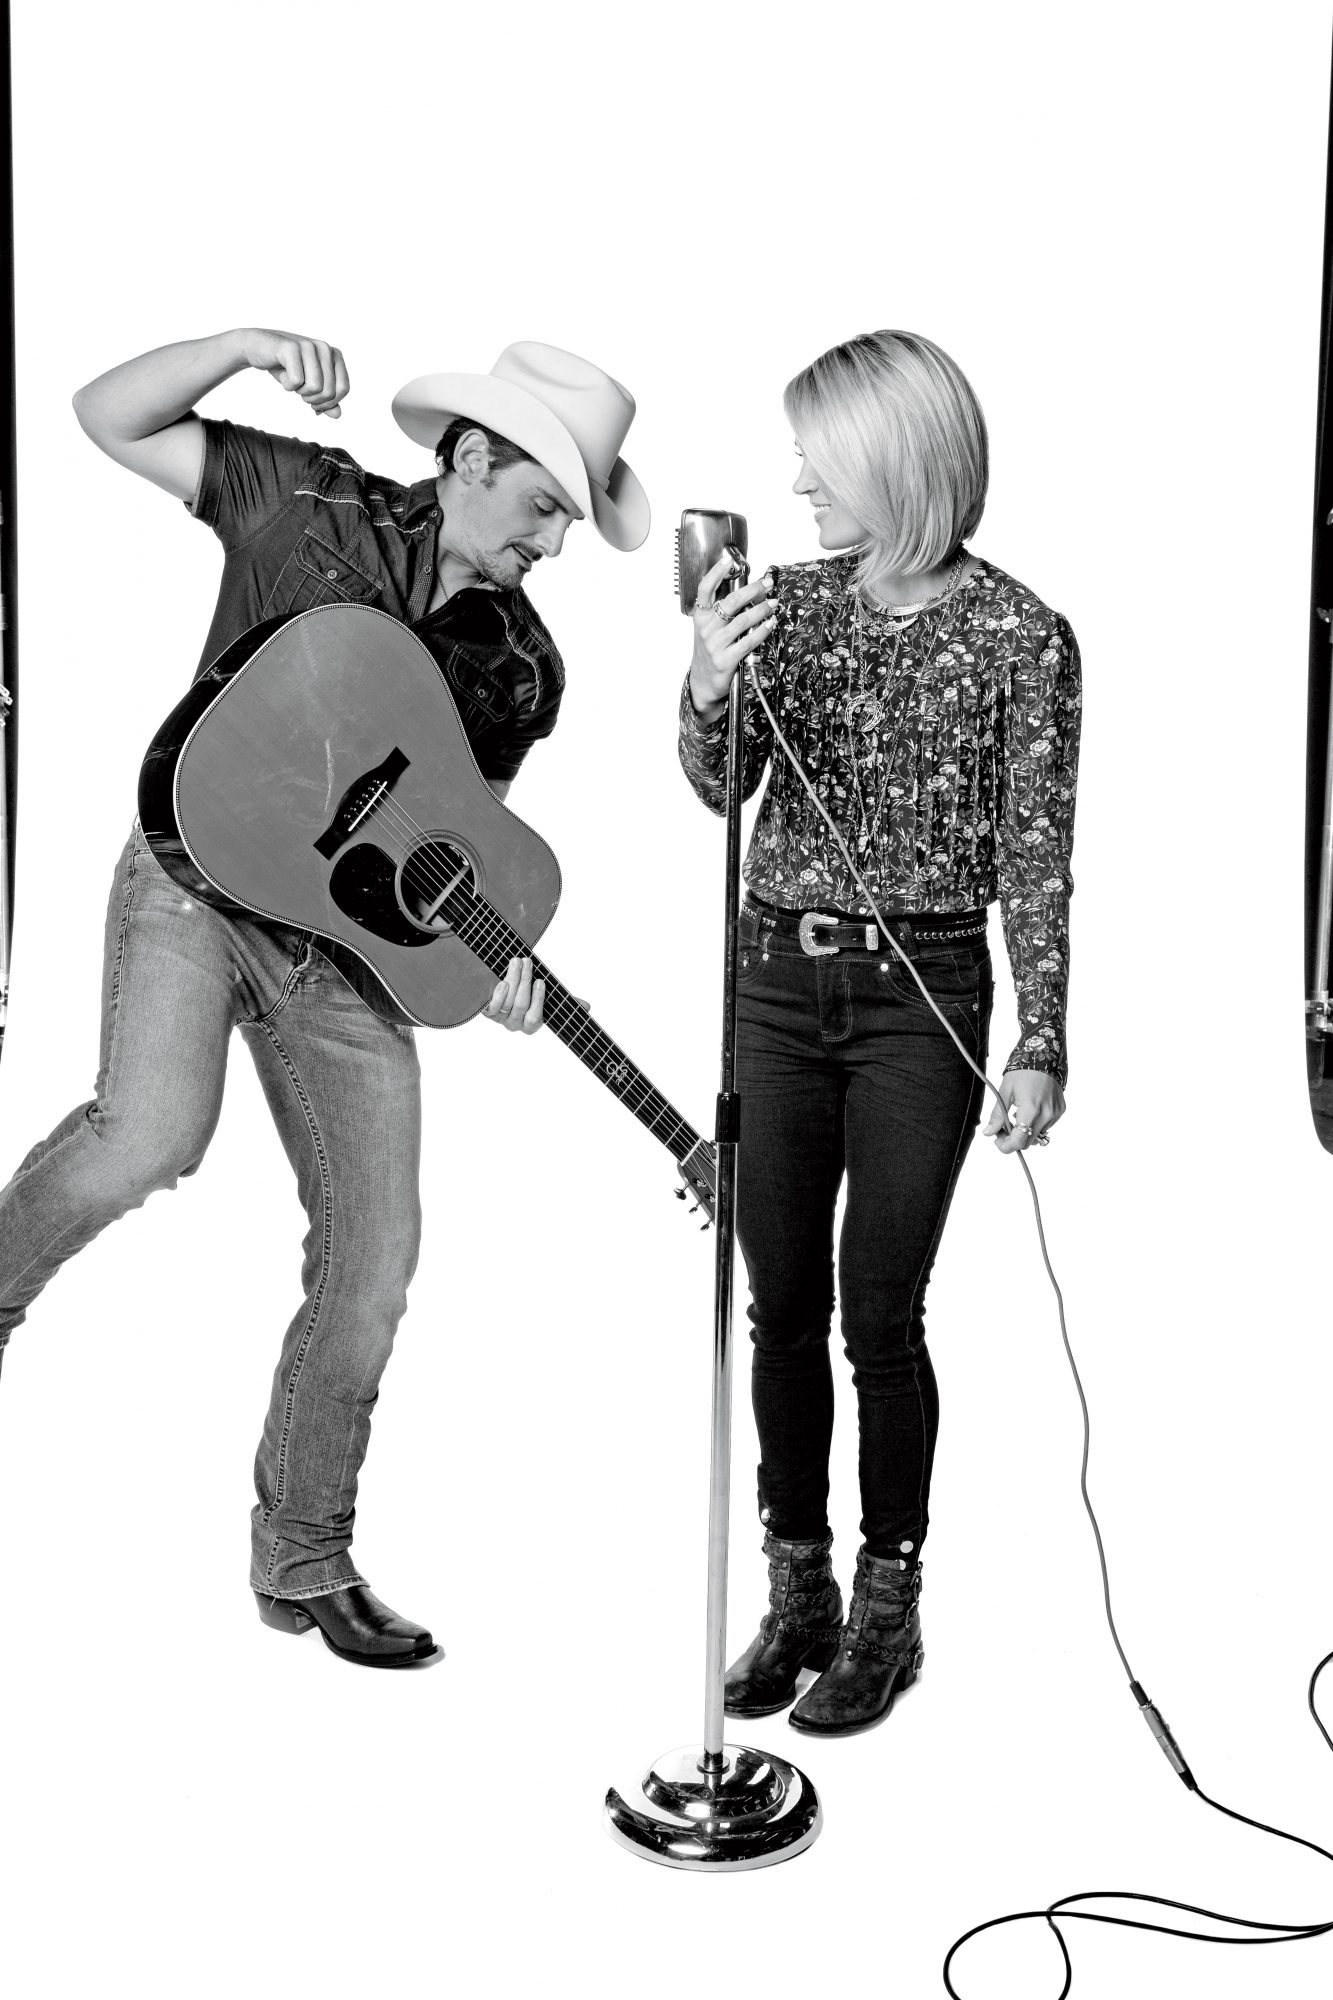 Brad with Guitar and Carrie with Microphone